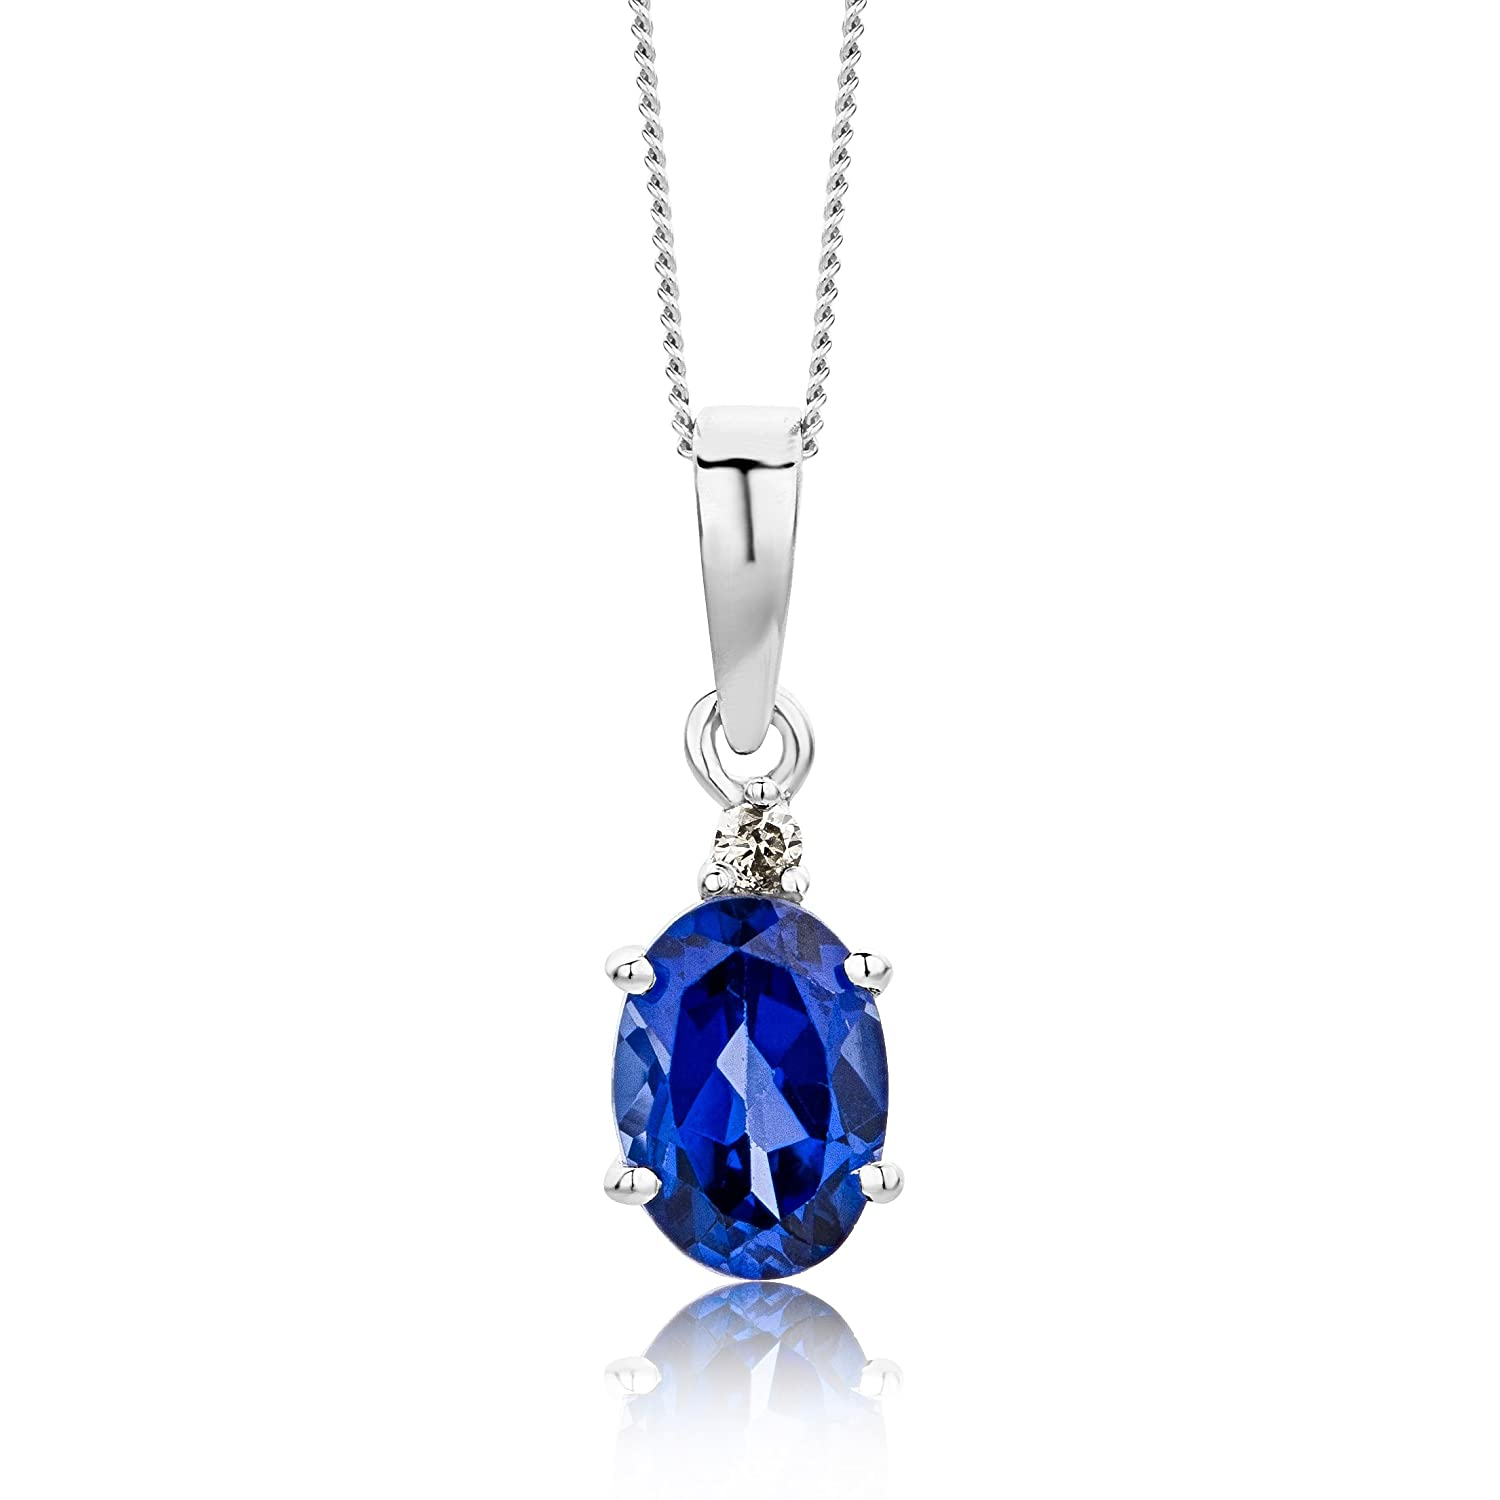 sapphire blue home necklaces shiny product necklace music adp equalizer diamond nature pendant